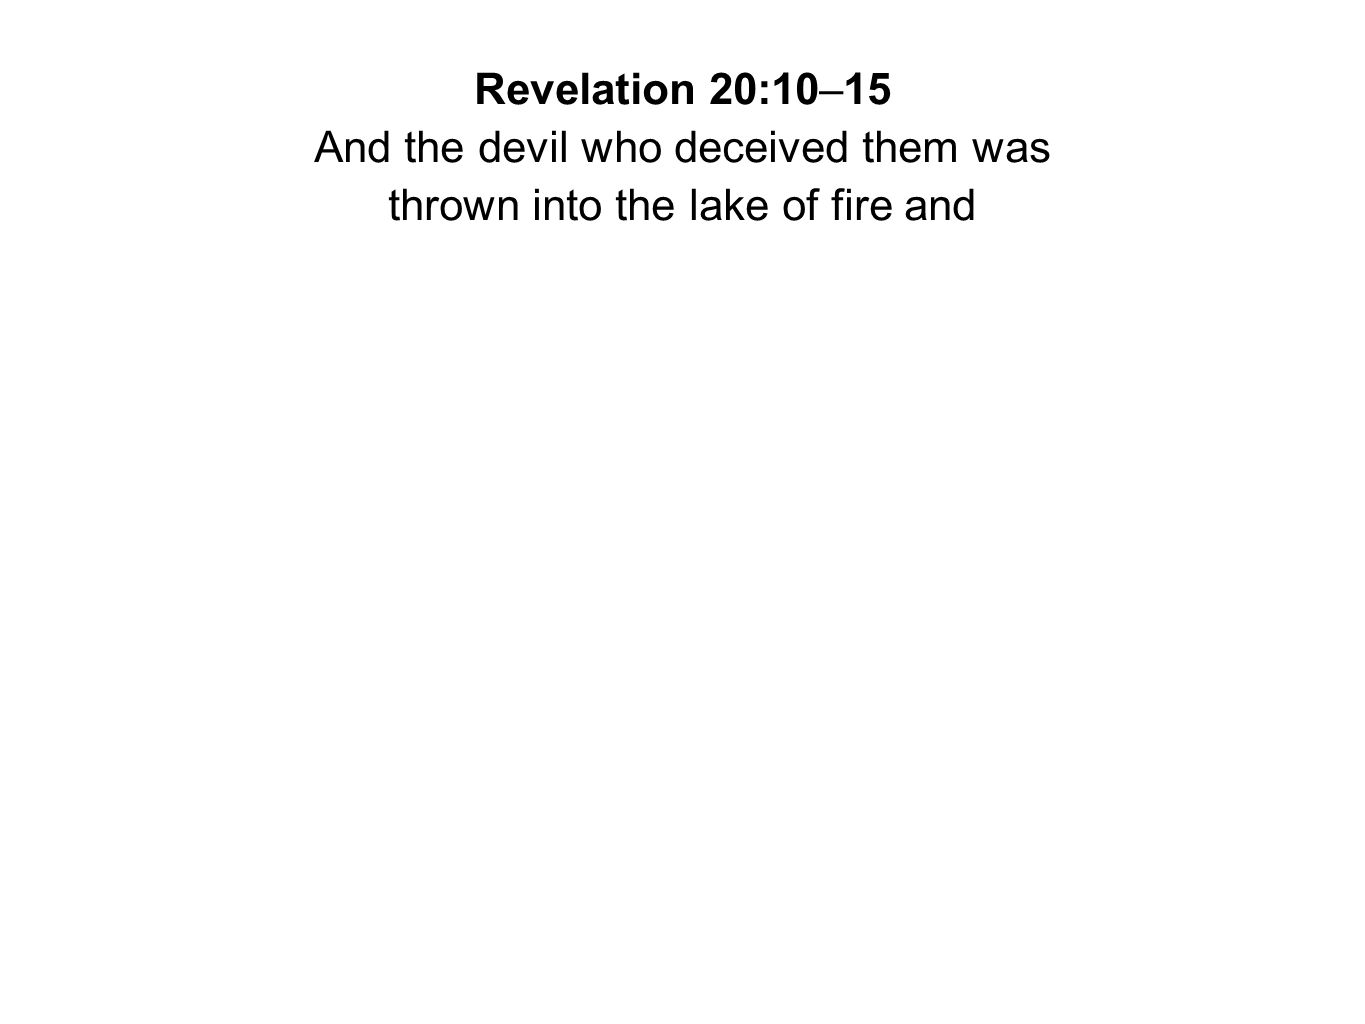 Revelation 20:10–15 And the devil who deceived them was thrown into the lake of fire and